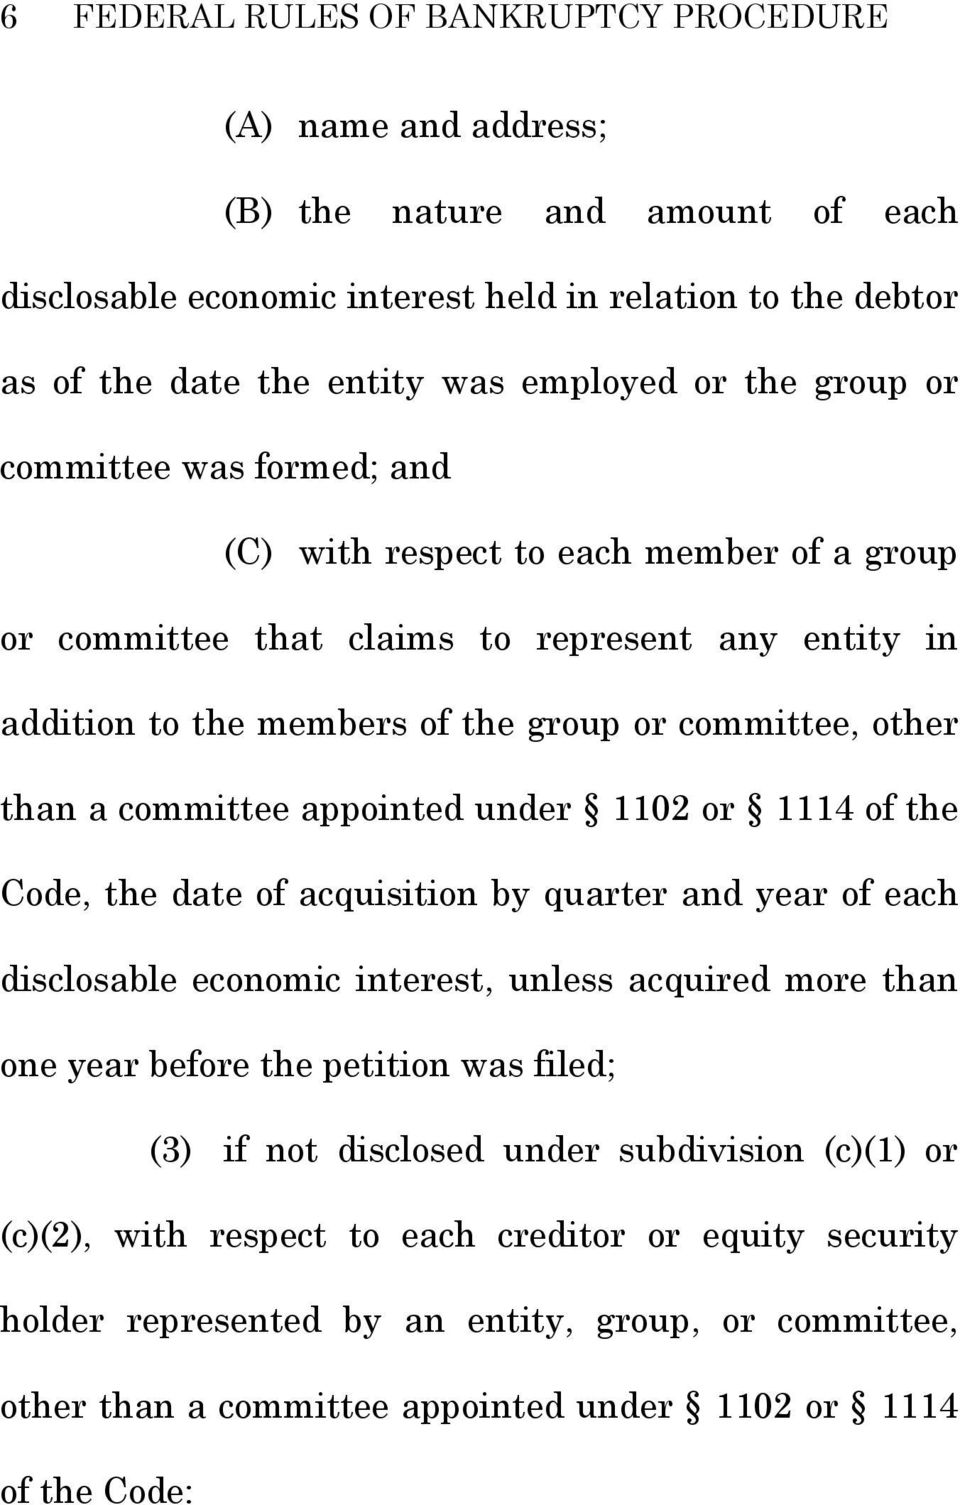 committee appointed under 1102 or 1114 of the Code, the date of acquisition by quarter and year of each disclosable economic interest, unless acquired more than one year before the petition was